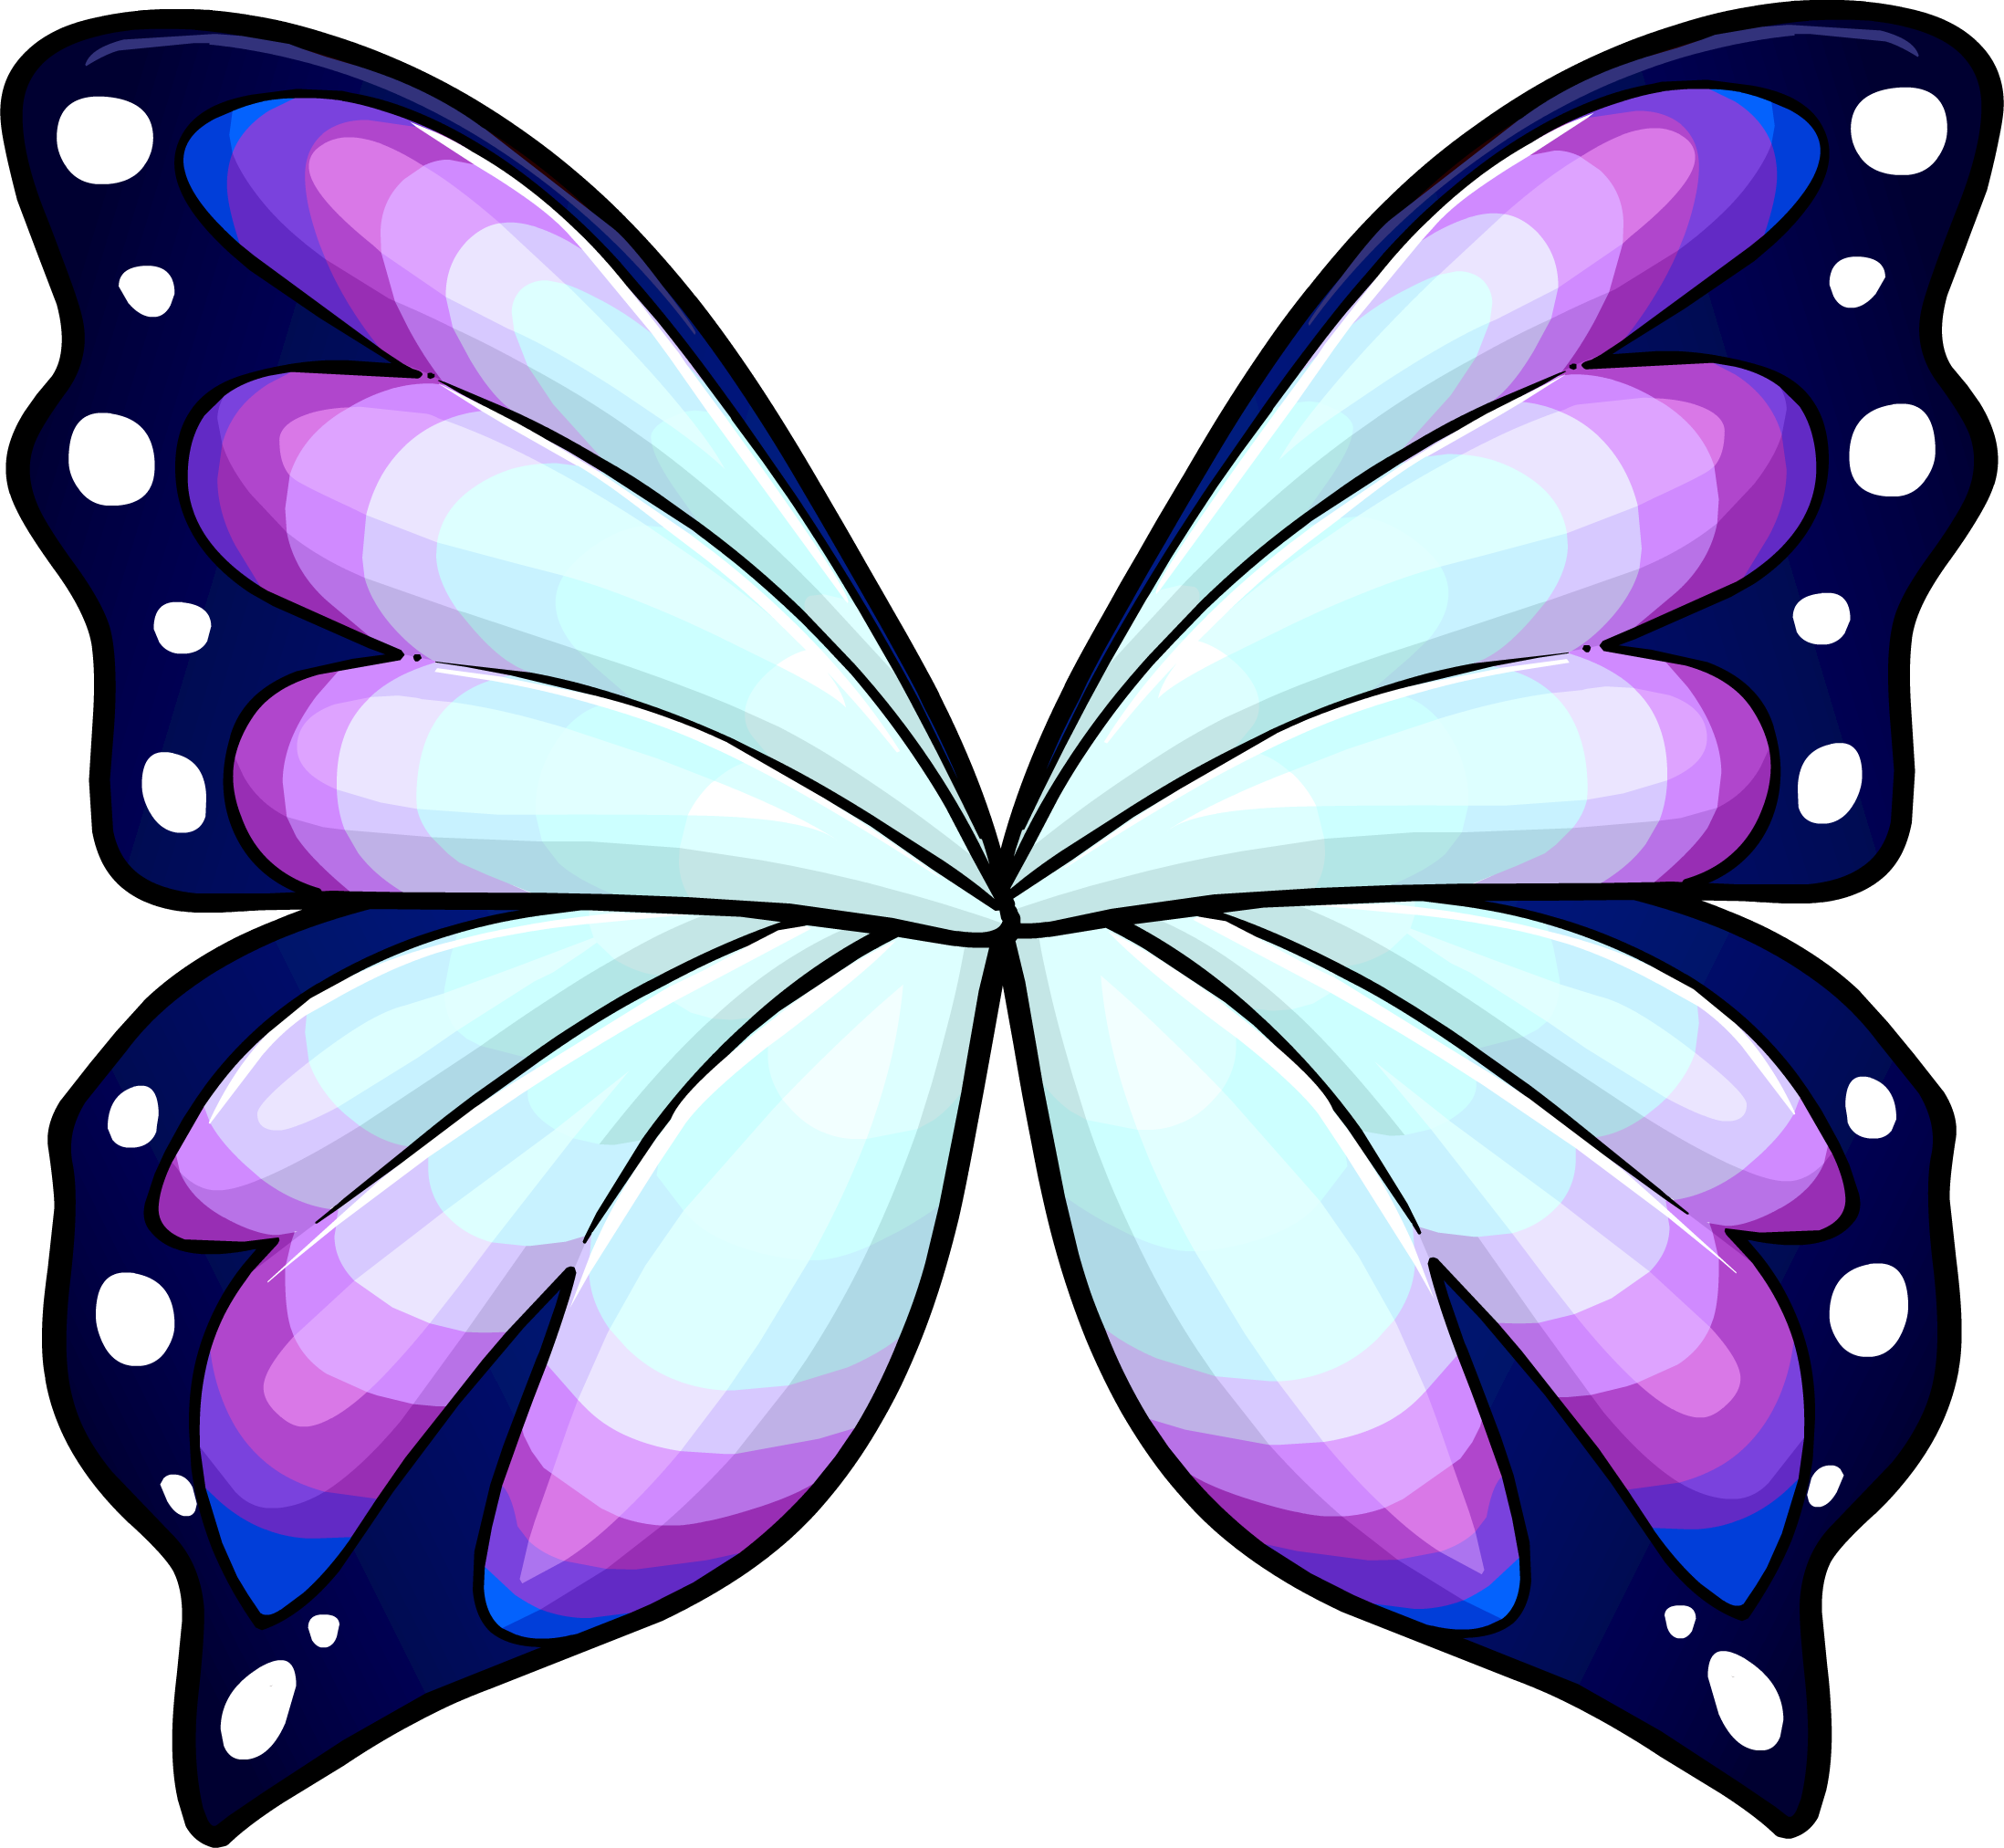 Wings drawing at getdrawings. Fairies clipart butterfly